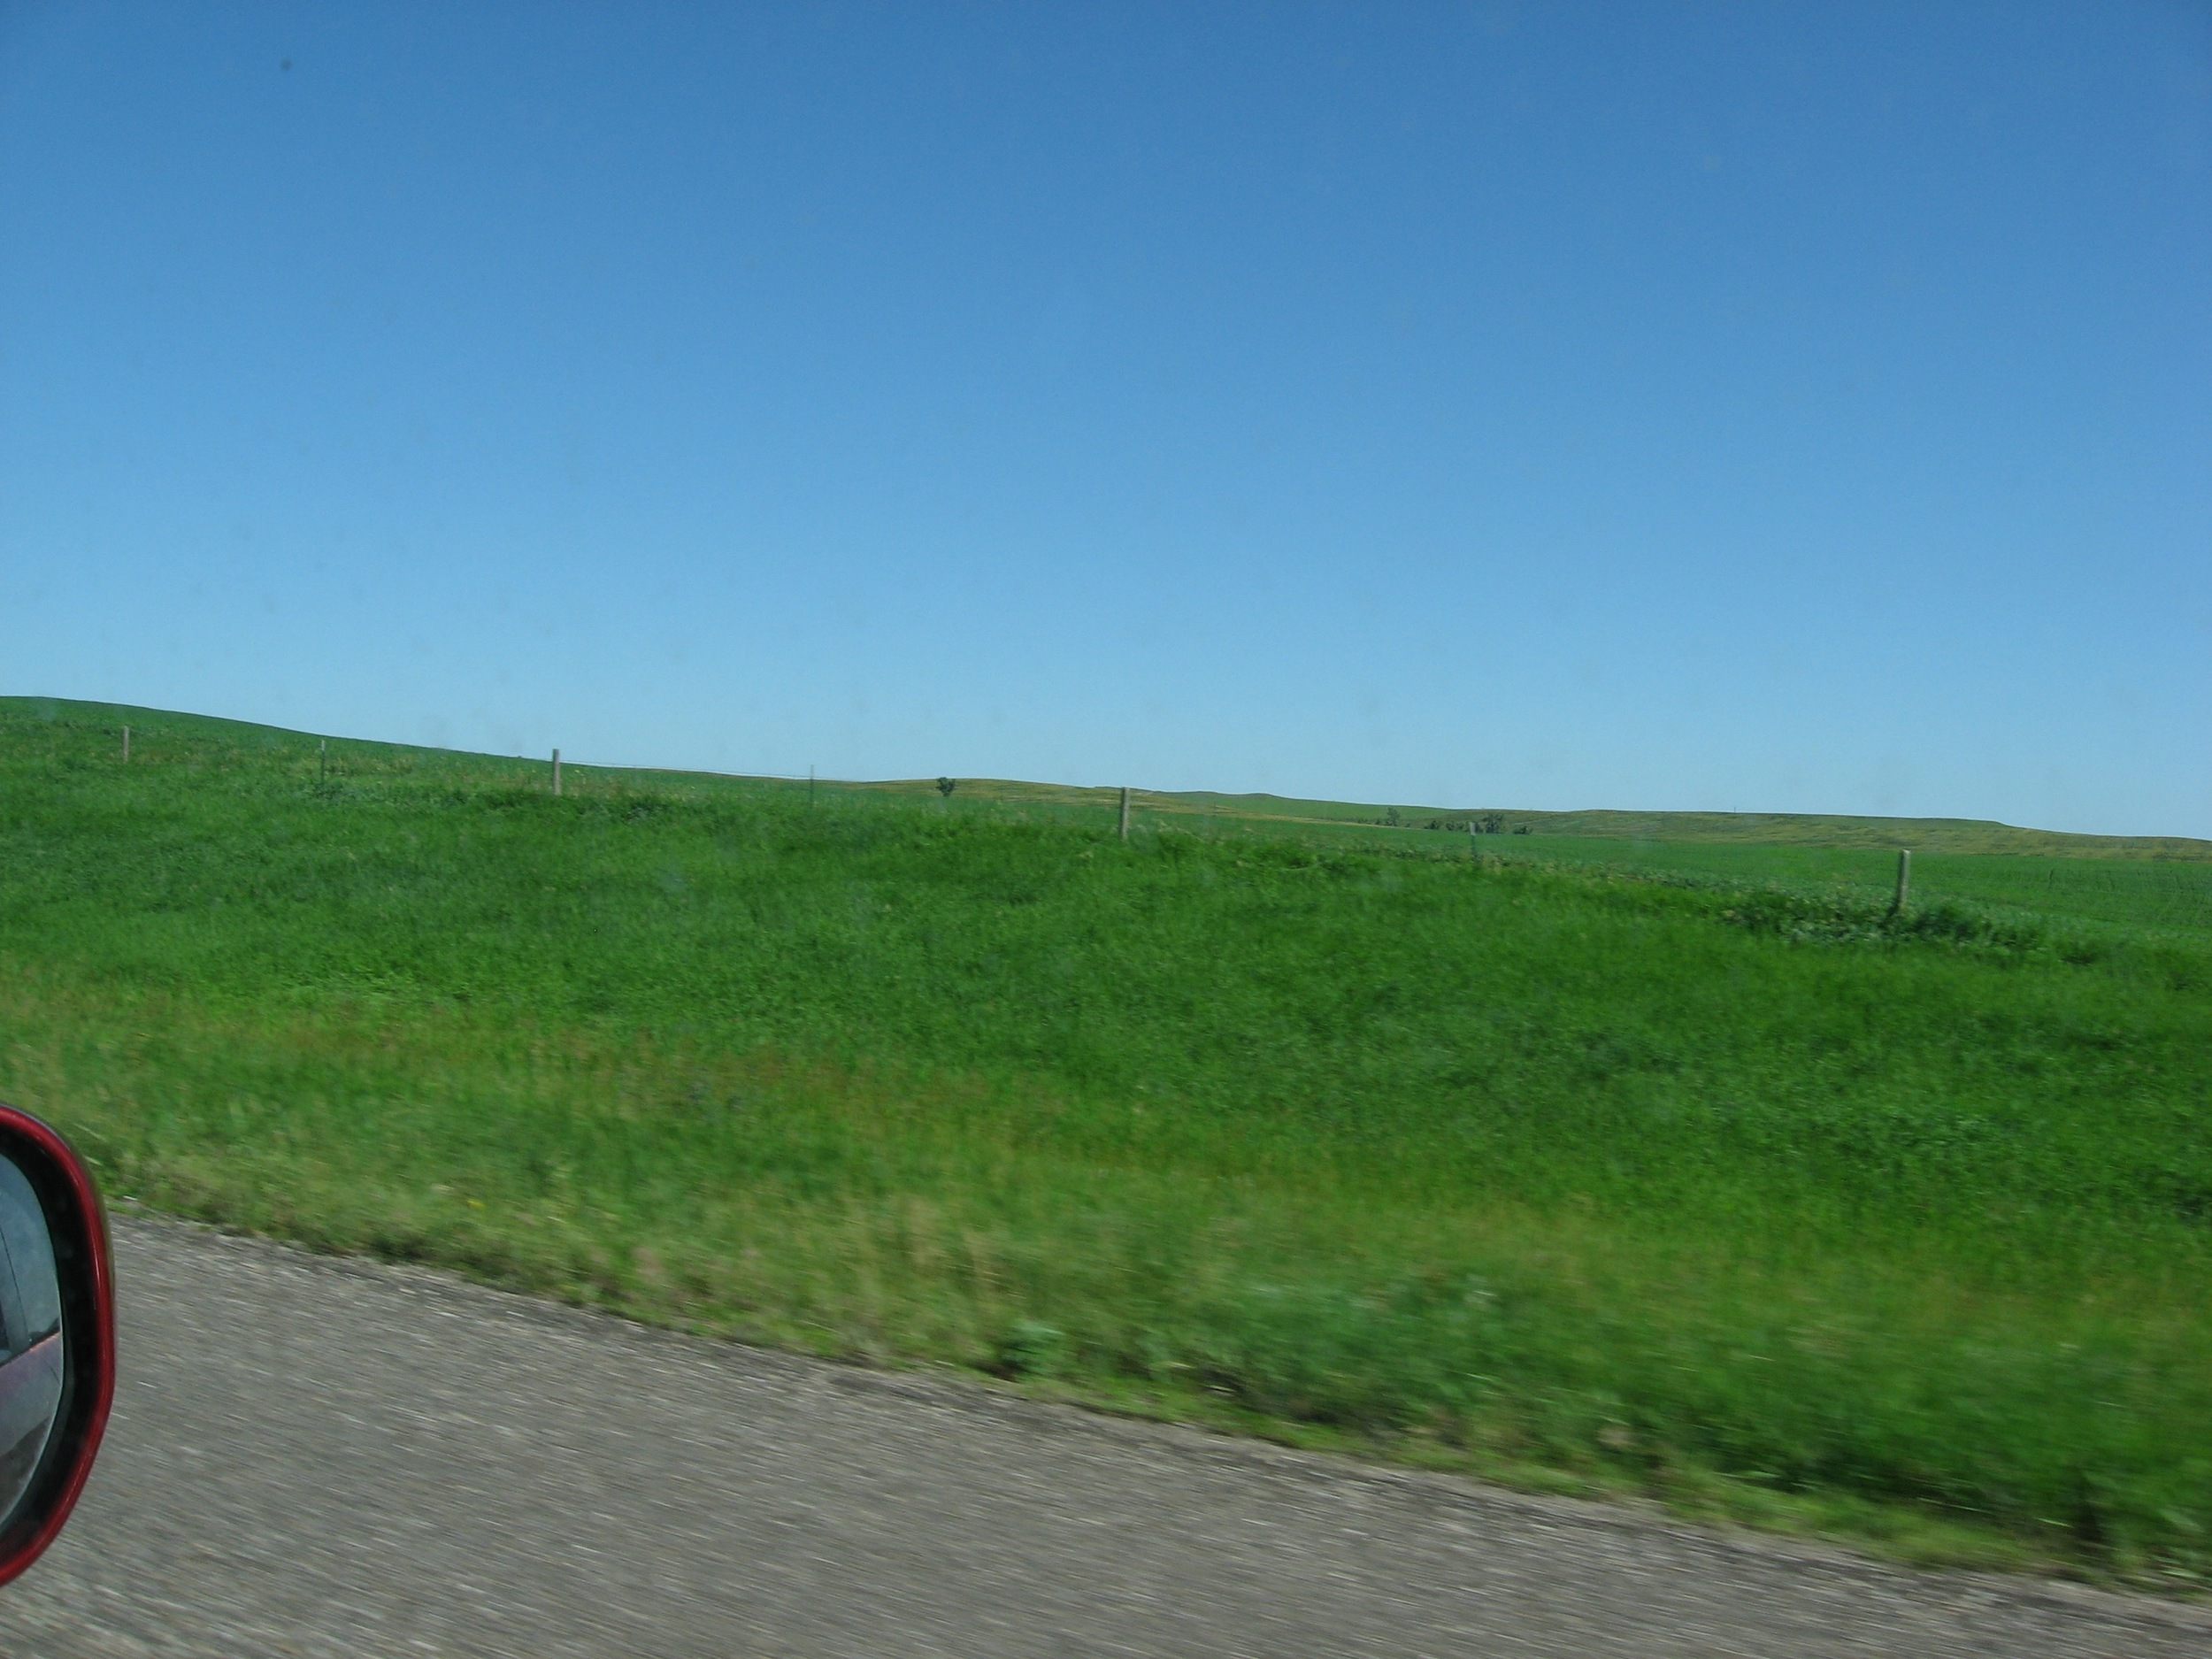 More South Dakota Plains